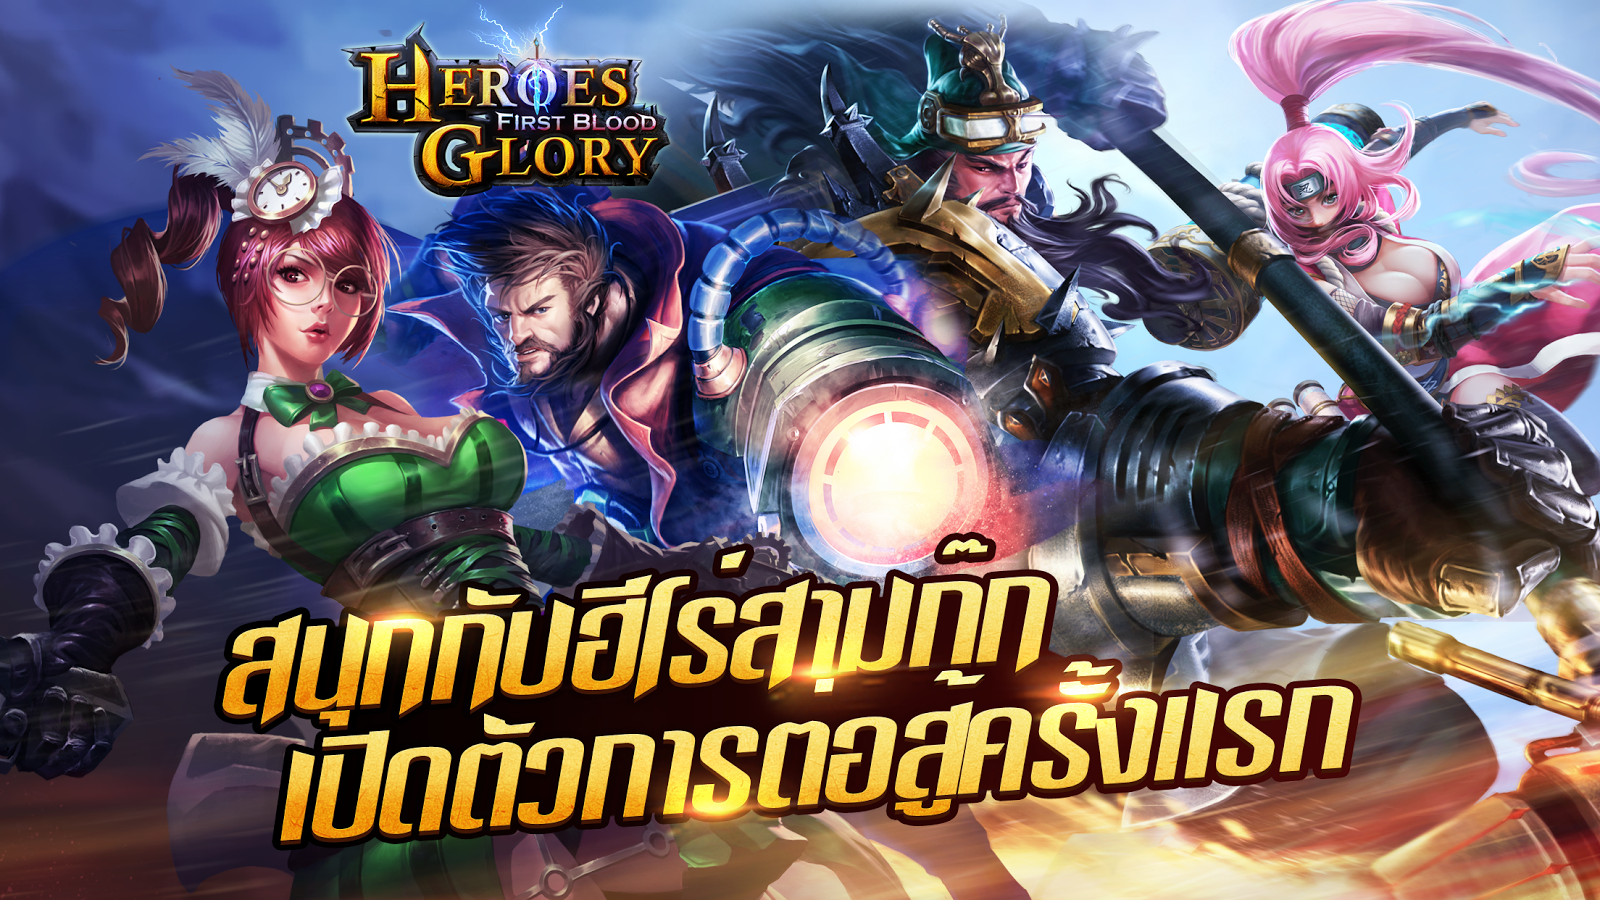 Heroes Glory: First Blood Screenshot 7